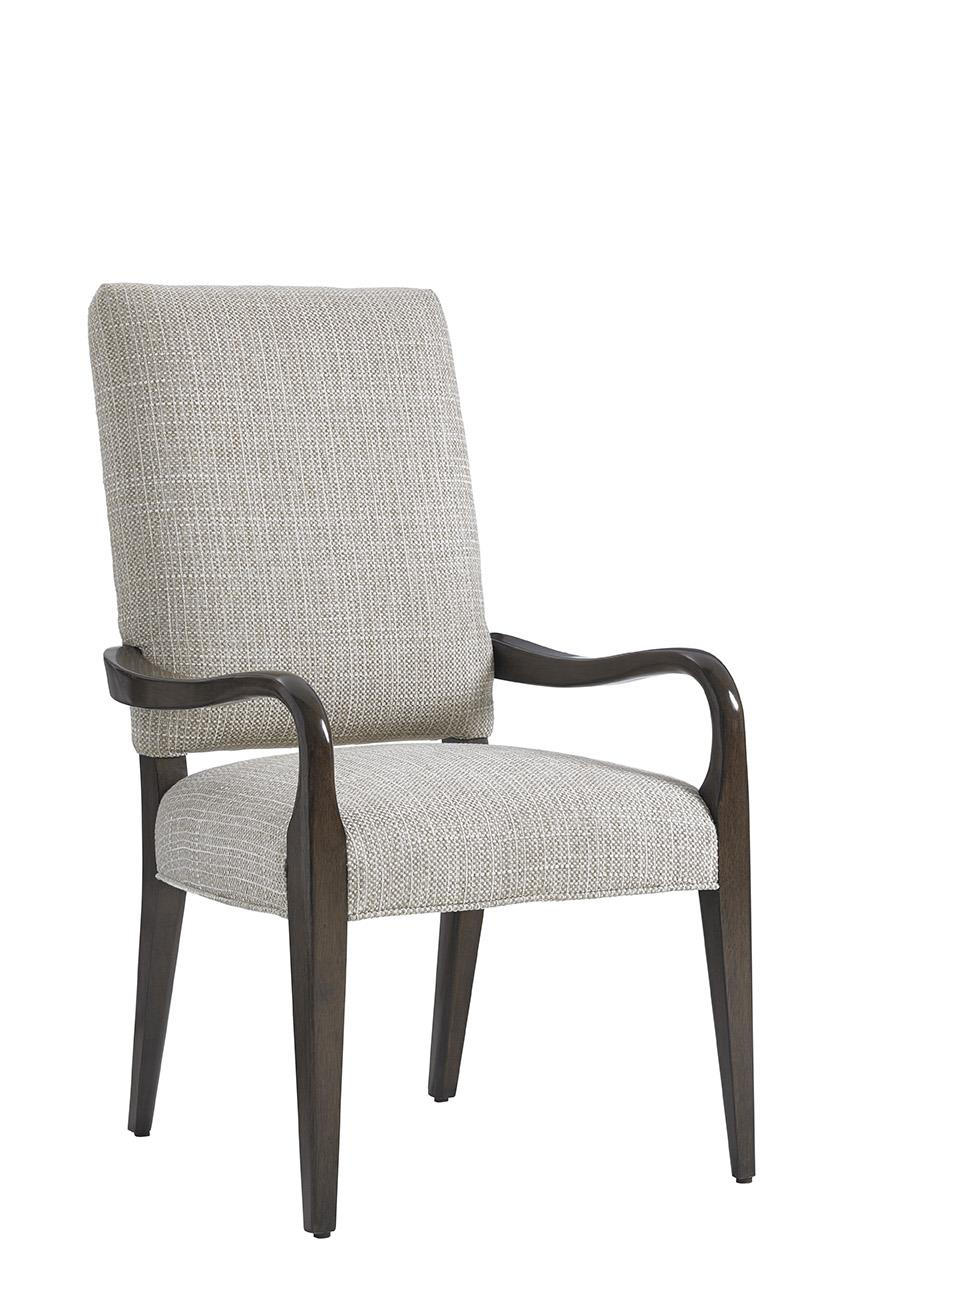 LAUREL CANYON Sierra Upholstered Arm Chair (Married Fabr) by Lexington at Johnny Janosik